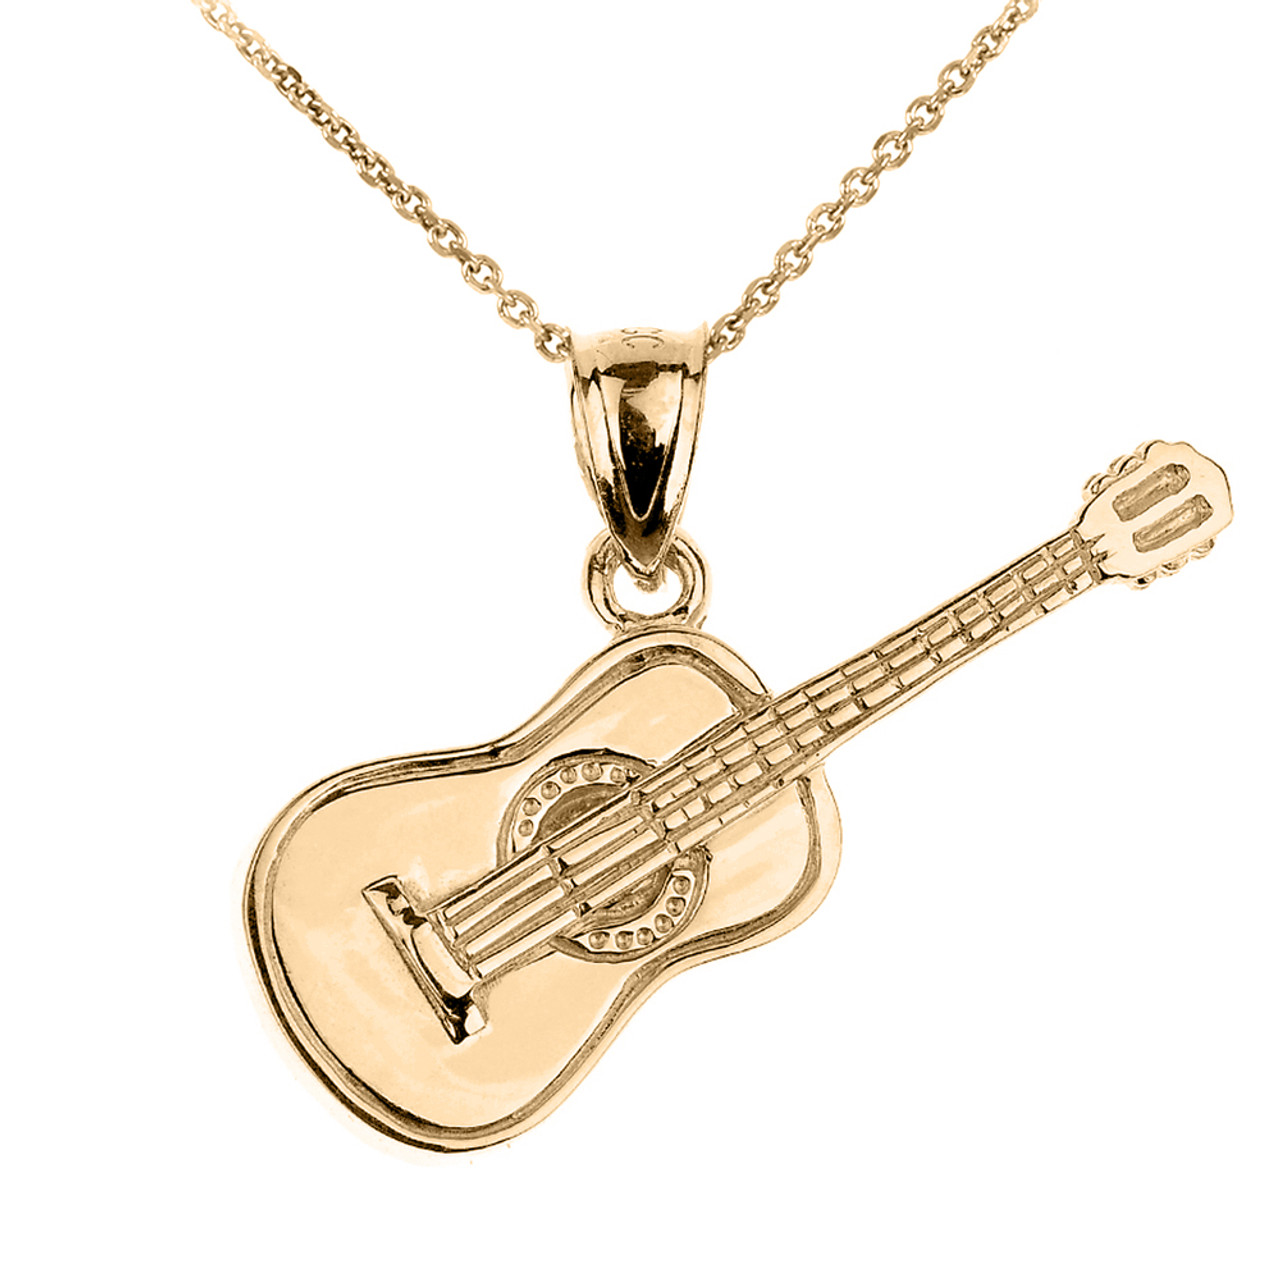 gift necklace v gibson boxed flying pewter in british guitar ekm english p made asp h